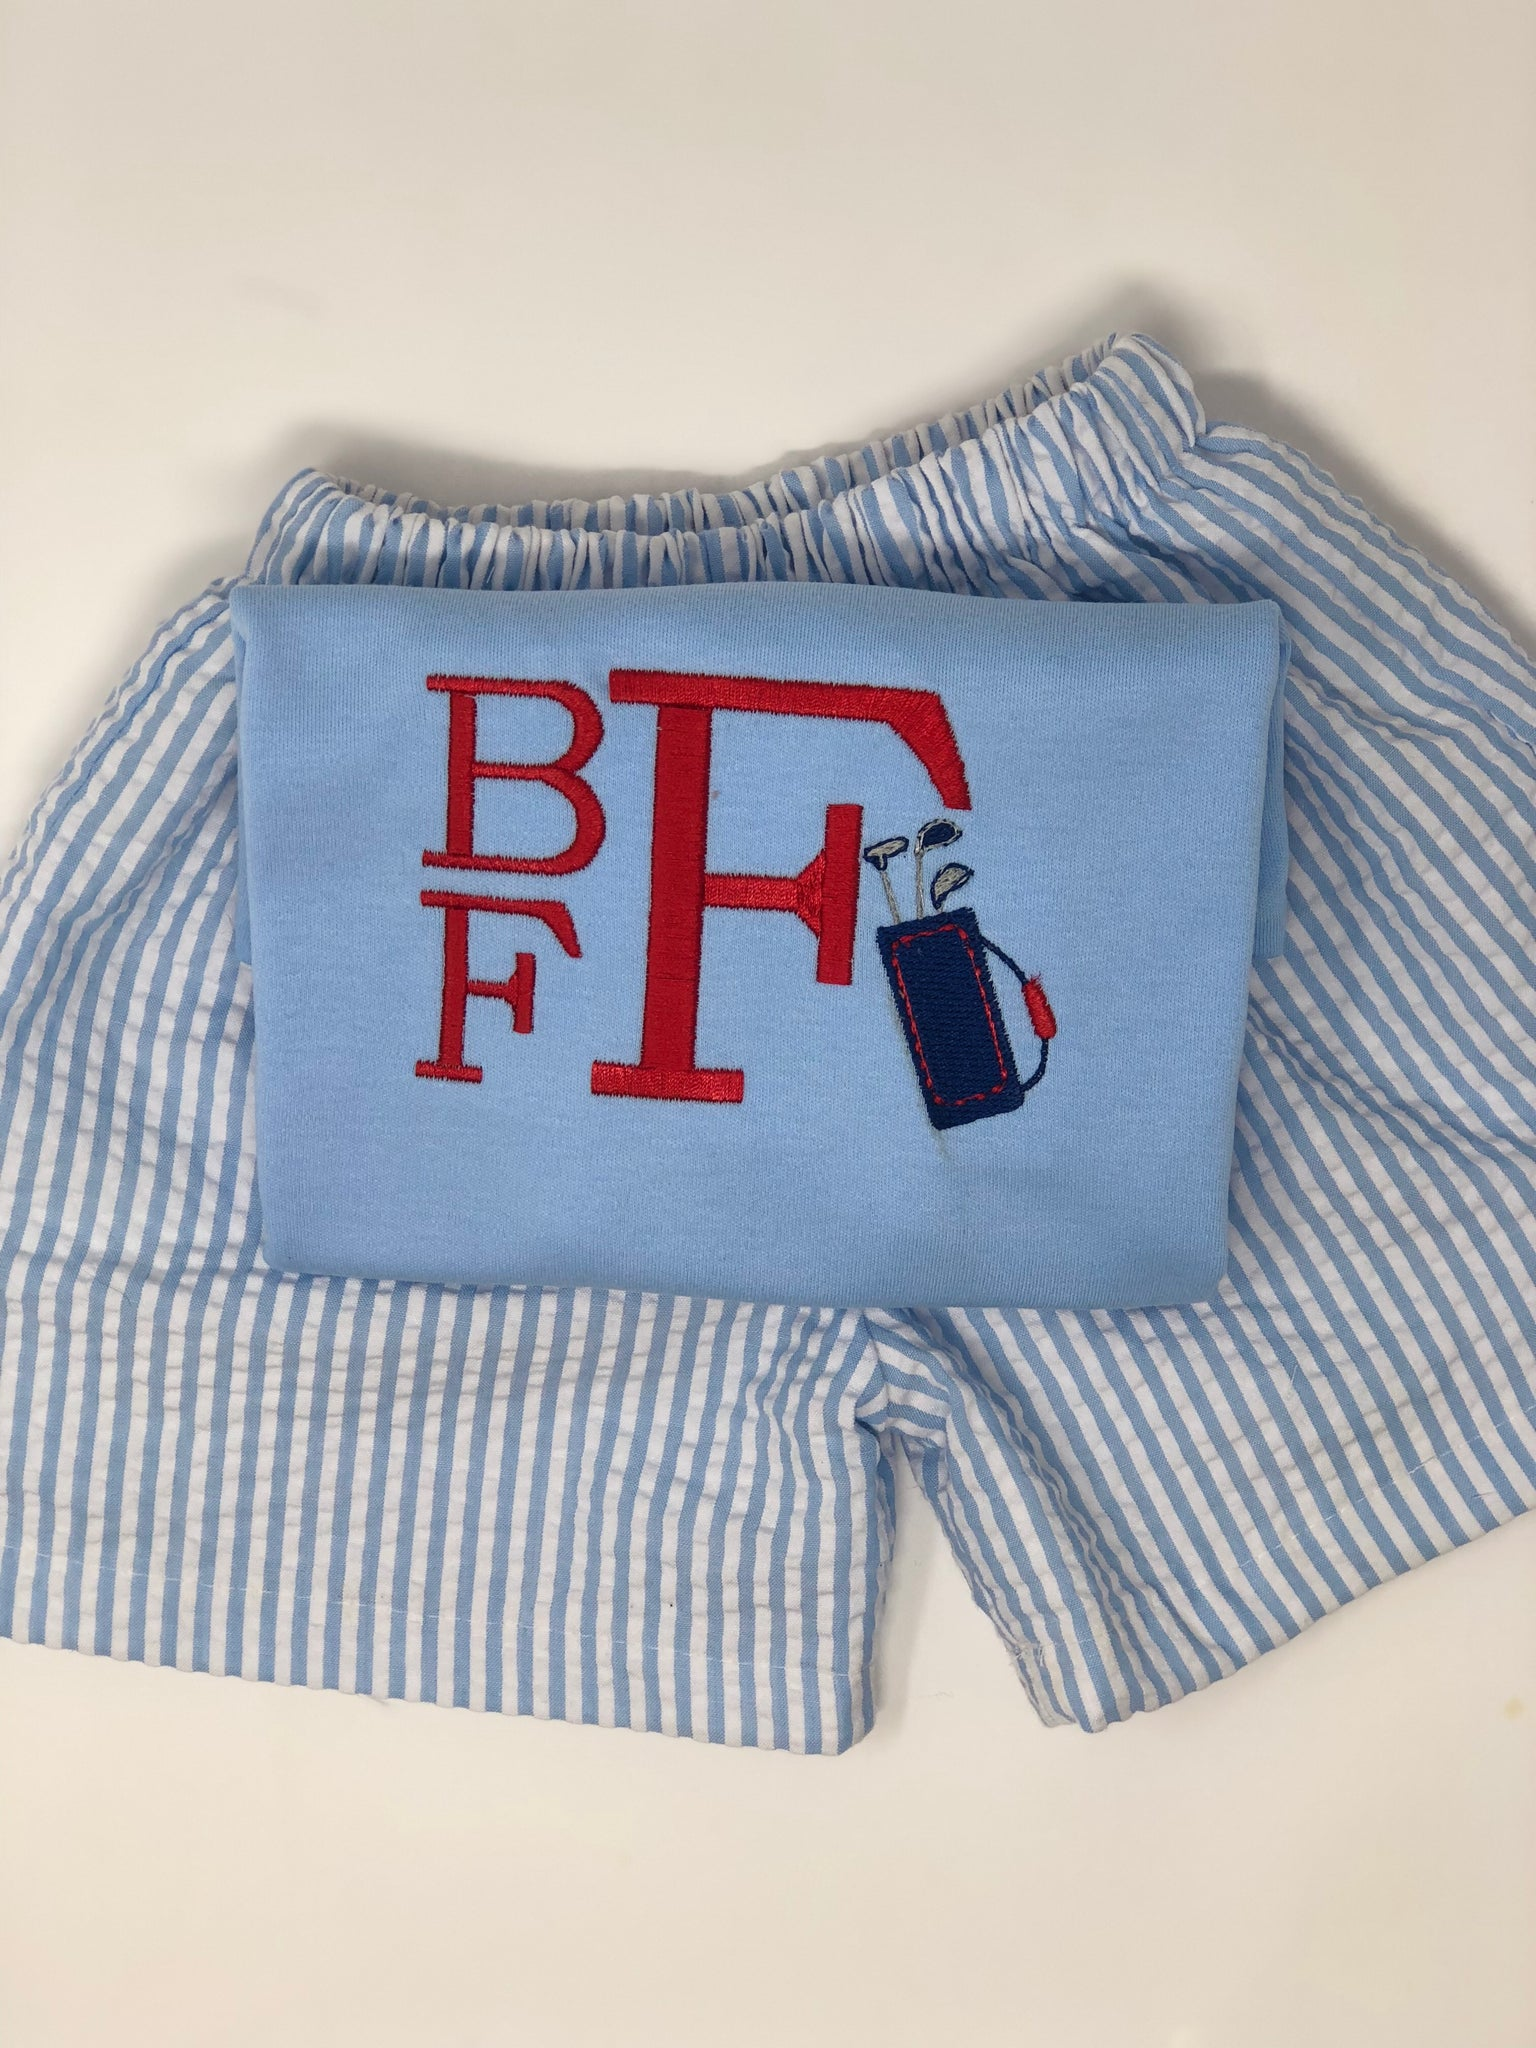 Golf Bag Initial Shirt on light blue